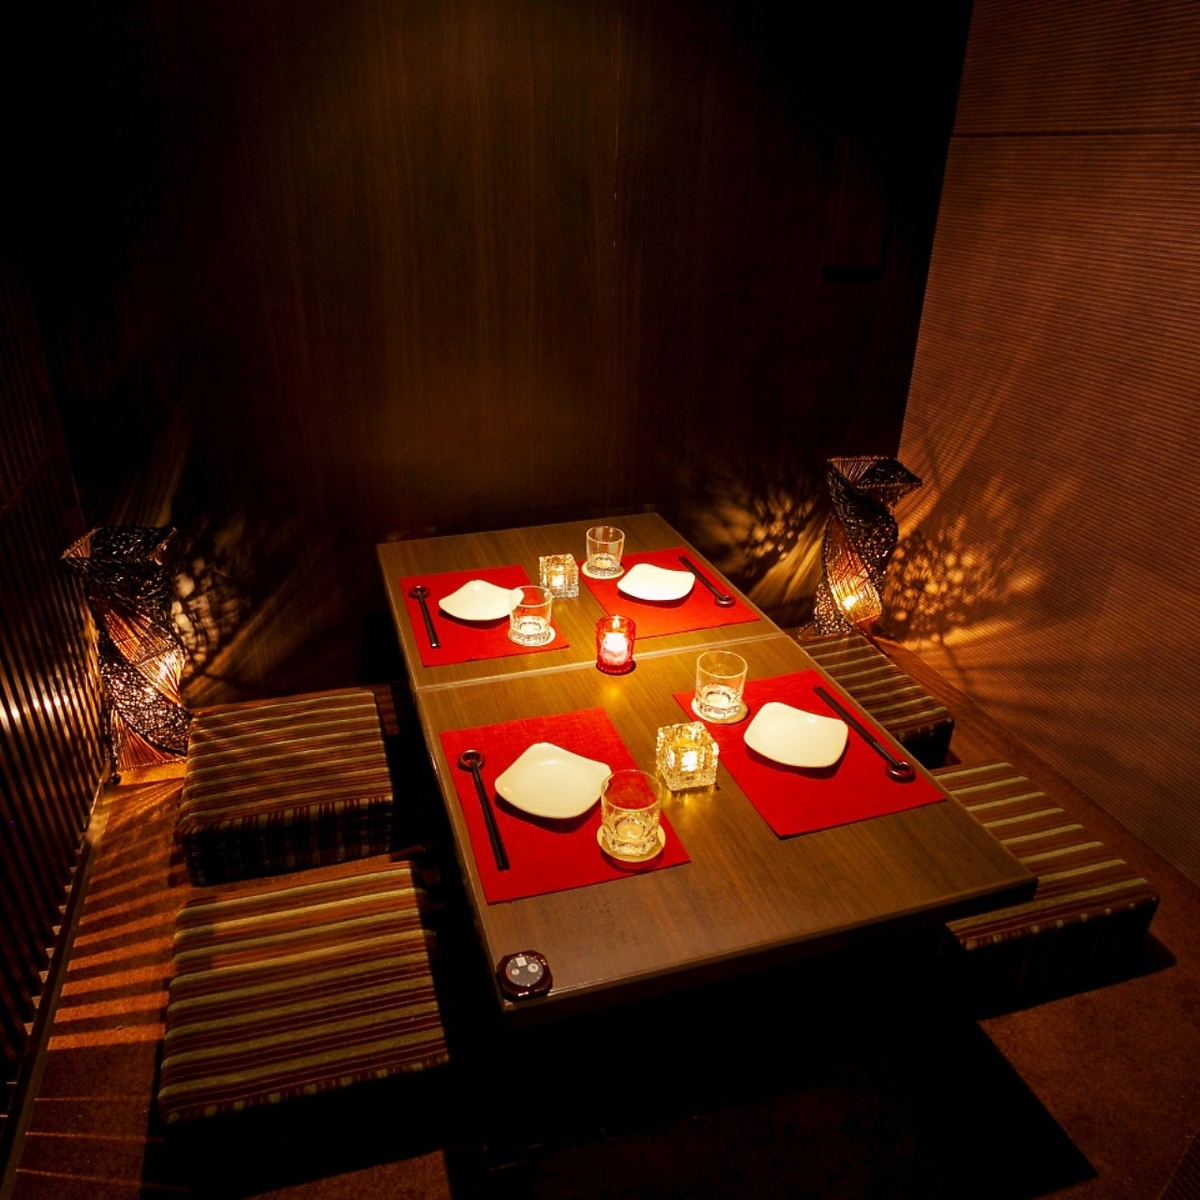 Stylish space of Japanese modern ♪ Please enjoy slowly and drinking party ☆ 彡 When you are looking for a pub, ◎ 彡 ☆ 彡 to luxurious private room space __ __ 彡 shop 【Umeda Izakaya complete single room Higashi Umeda banquet farewell birthday girls Drink as much as you can